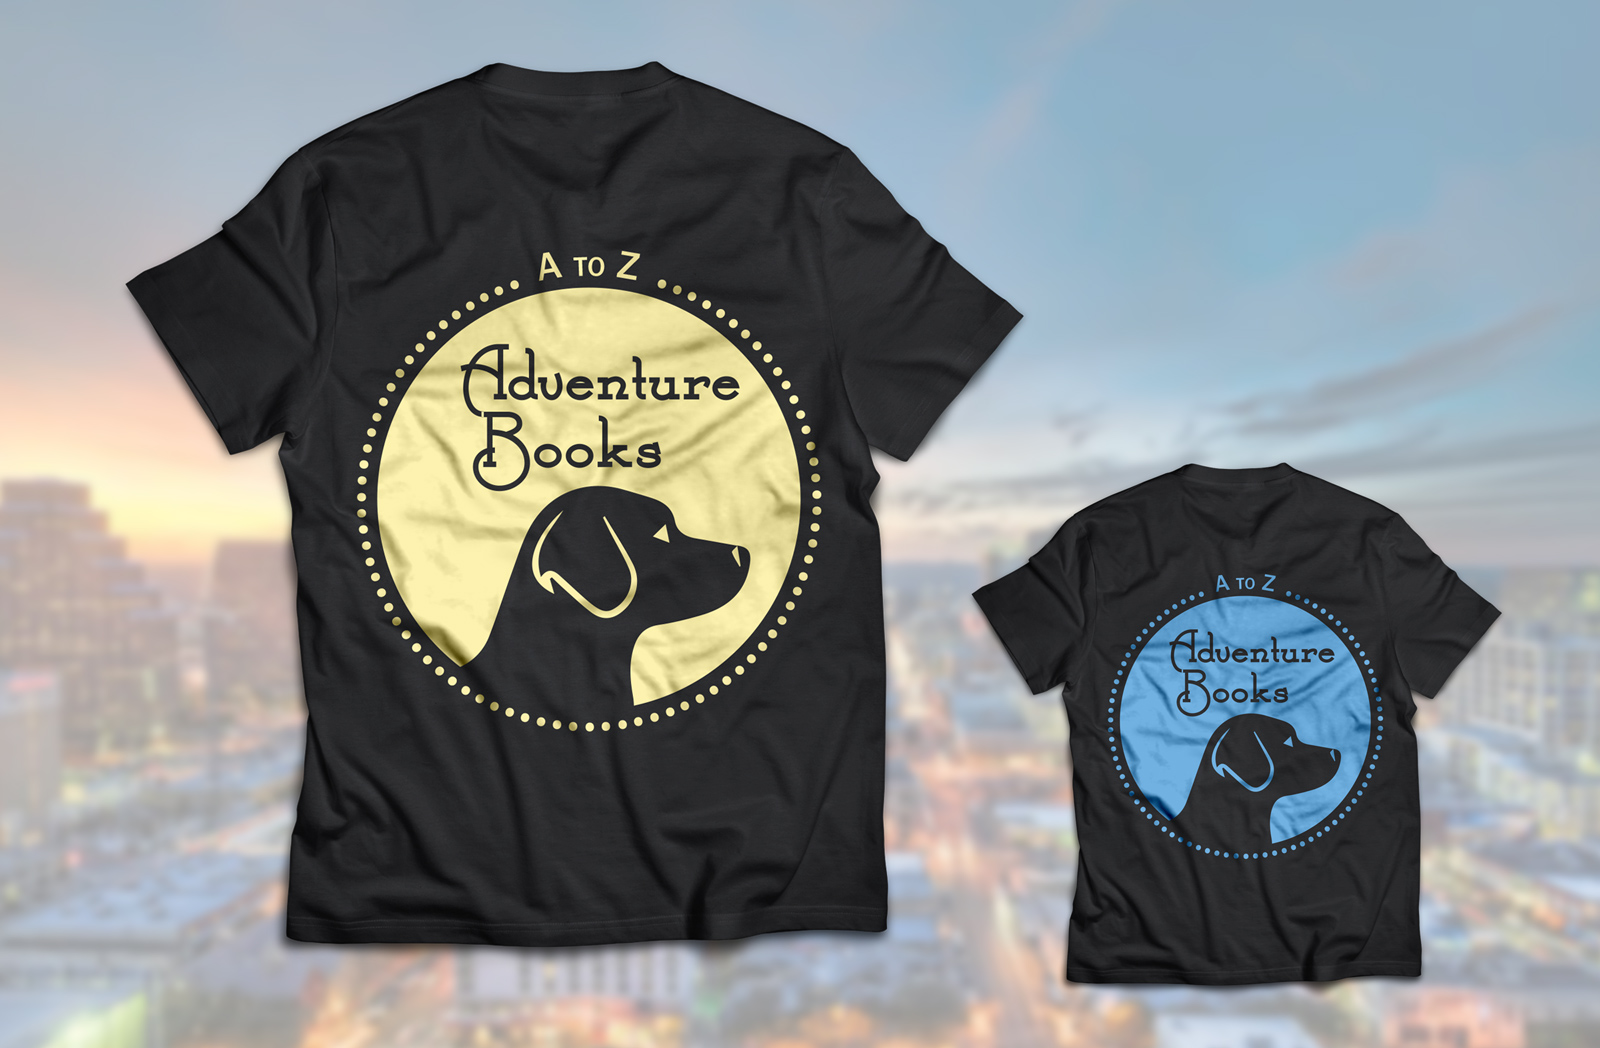 a to z adventure books dog logo on black t shirt